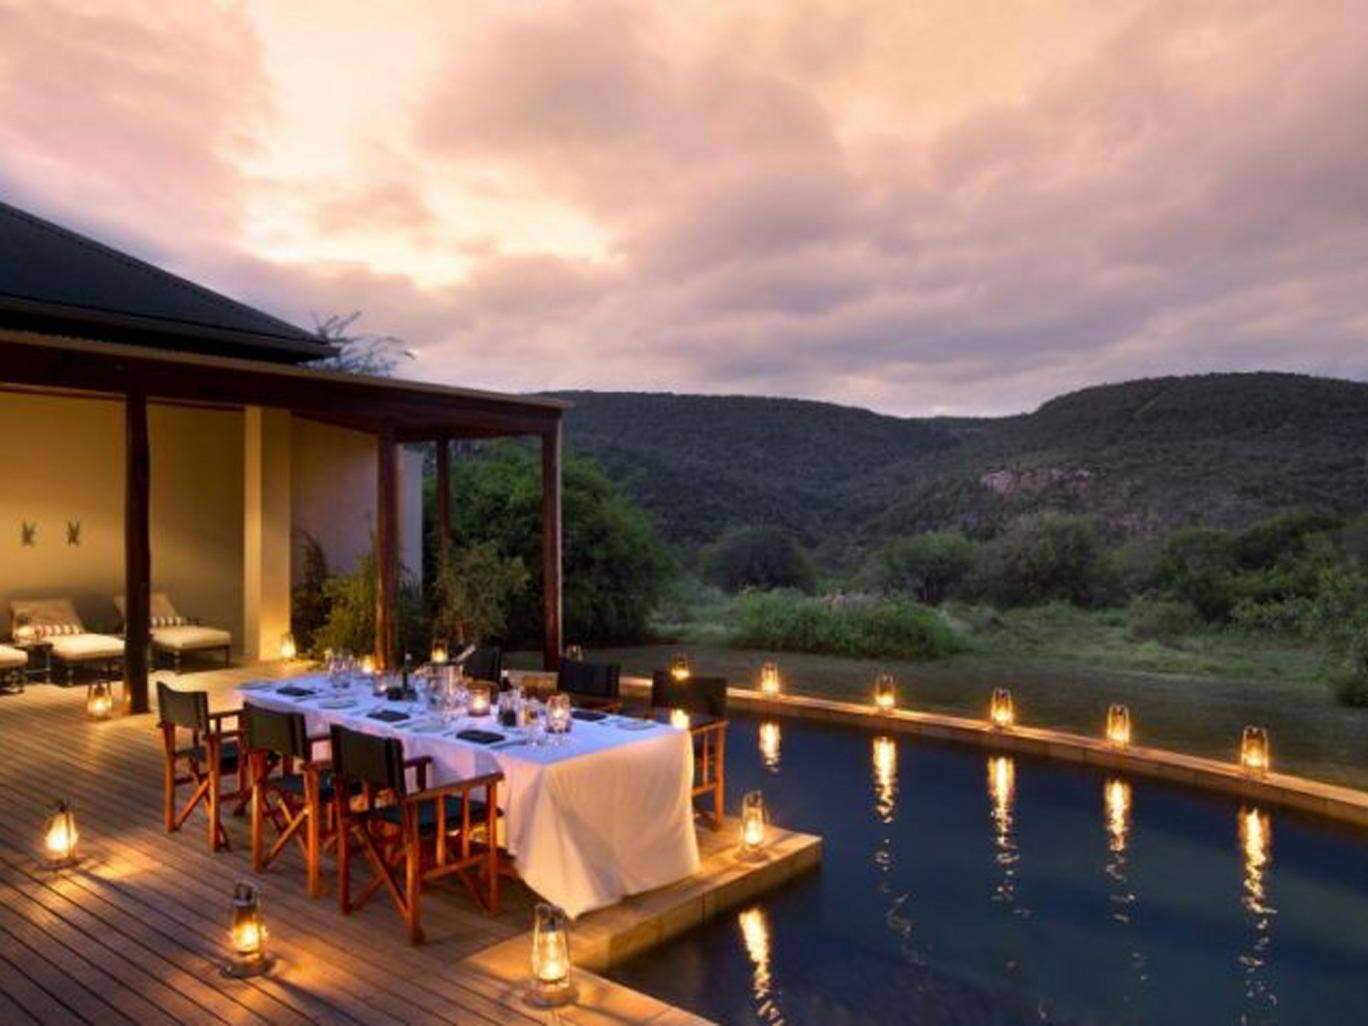 Nature calls: the picturesque Melton Manor in South Africa